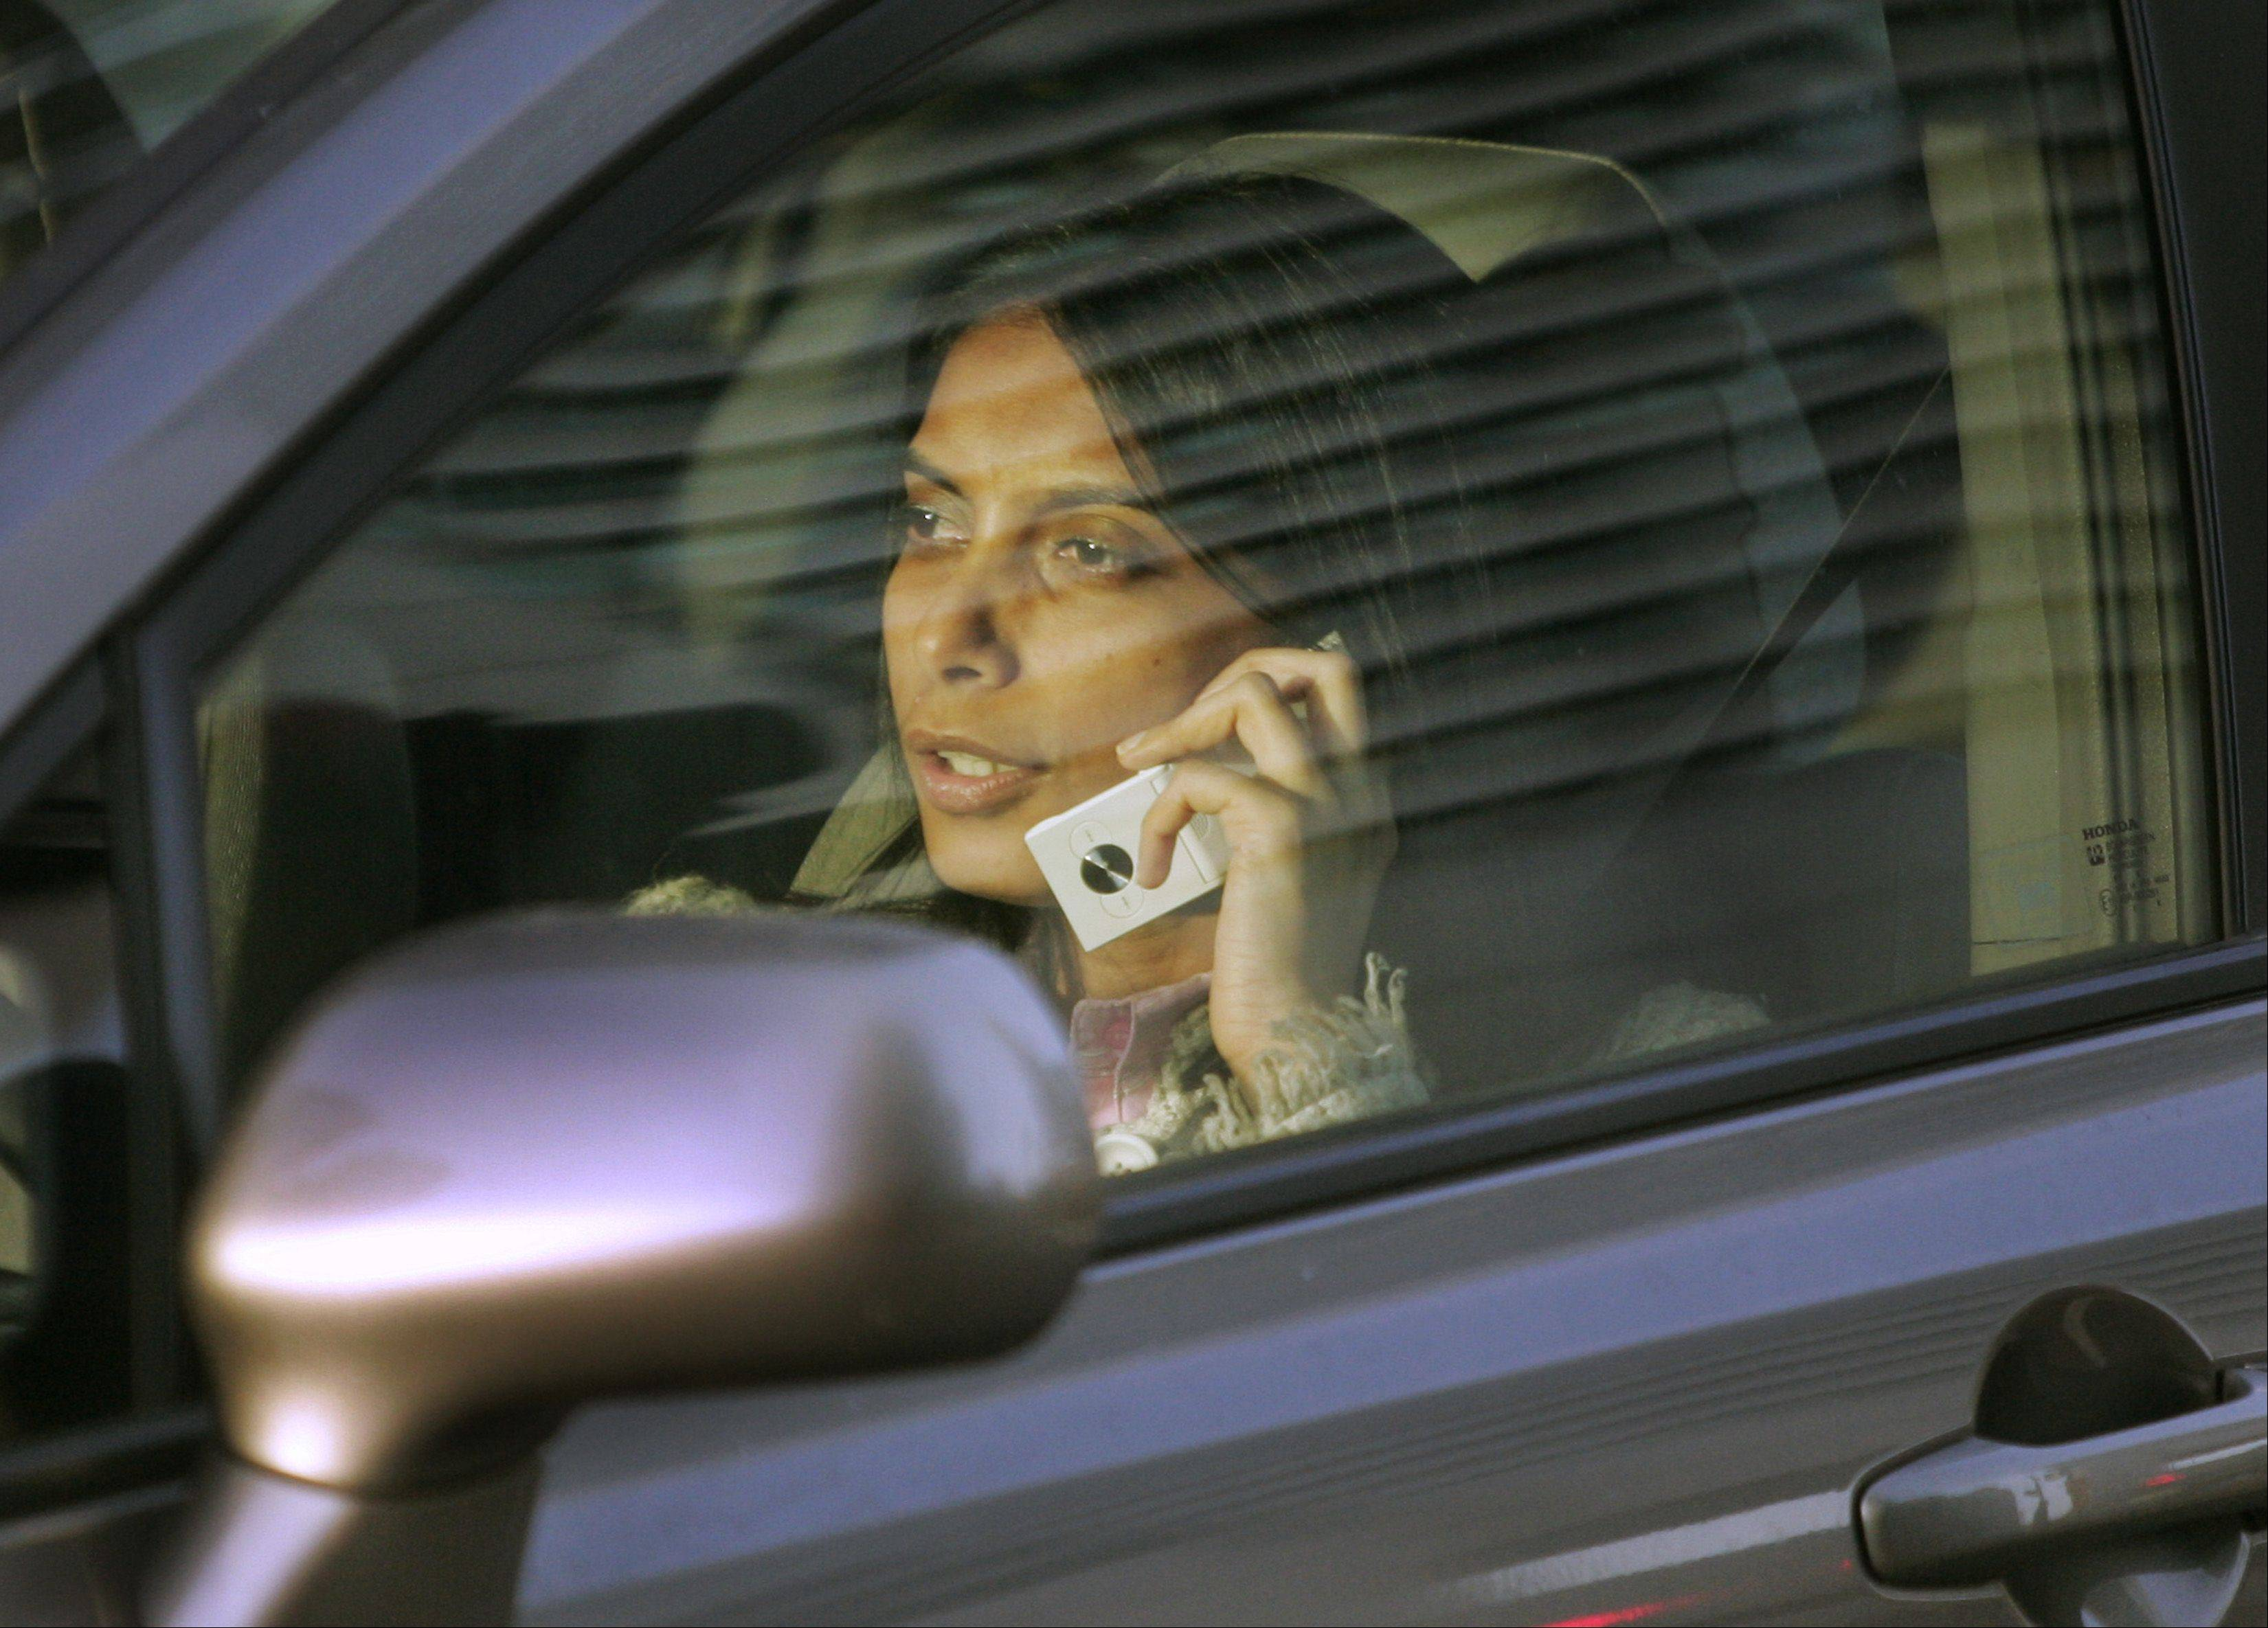 Gov. Pat Quinn signed legislation Friday to ban handheld cellphone use while driving. The new law, which takes effect Jan. 1, will get a little help in enforcement from another law Quinn approved that increases penalties for drivers using electronic devices who cause accidents.